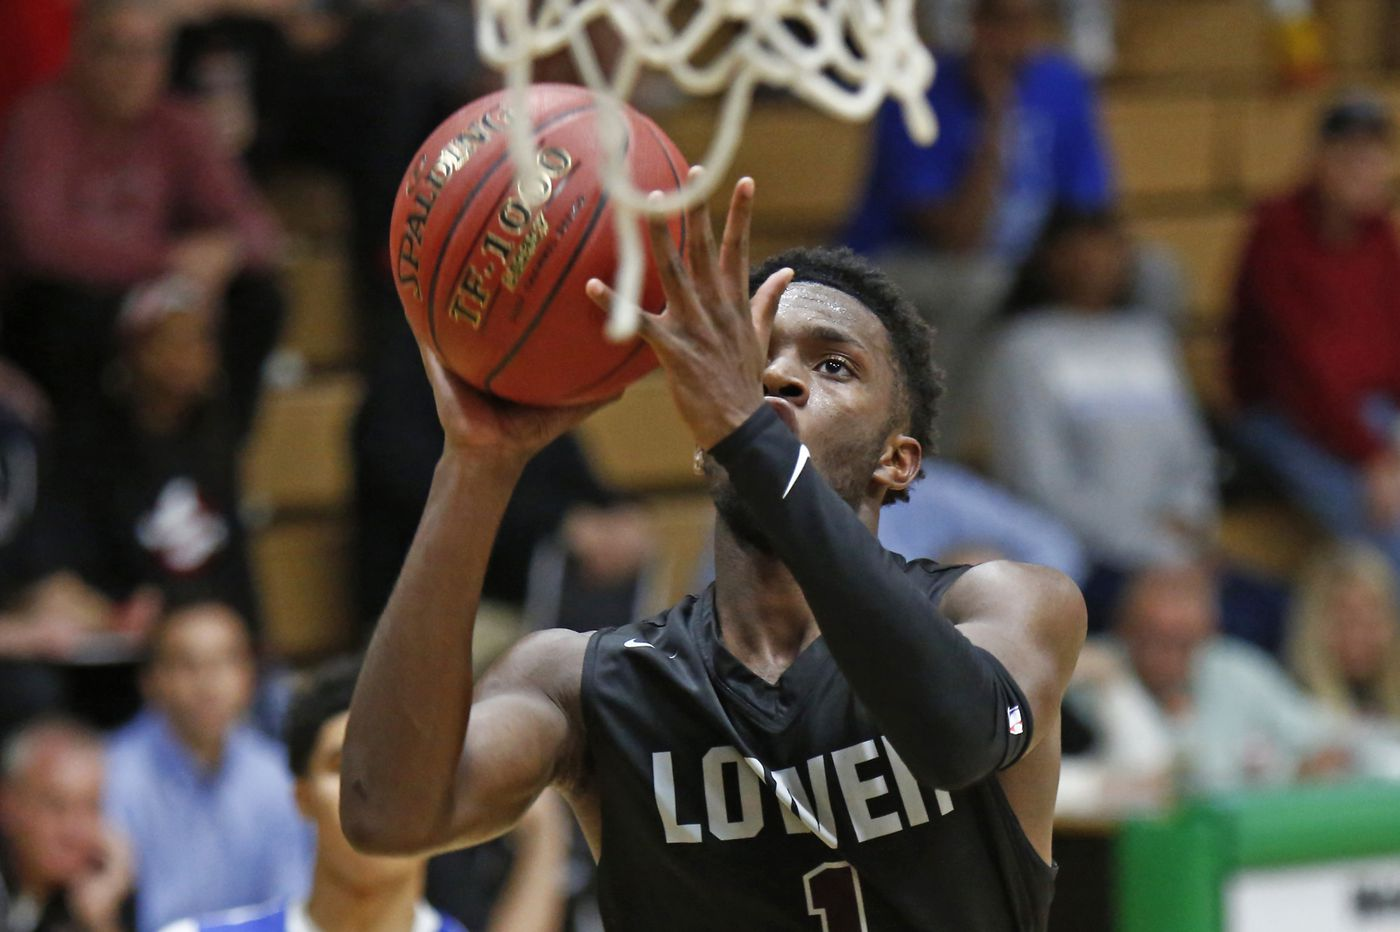 Tuesday's Southeastern Pa. roundup: Bishop McDevitt boys beat Wood for first time in more than a decade